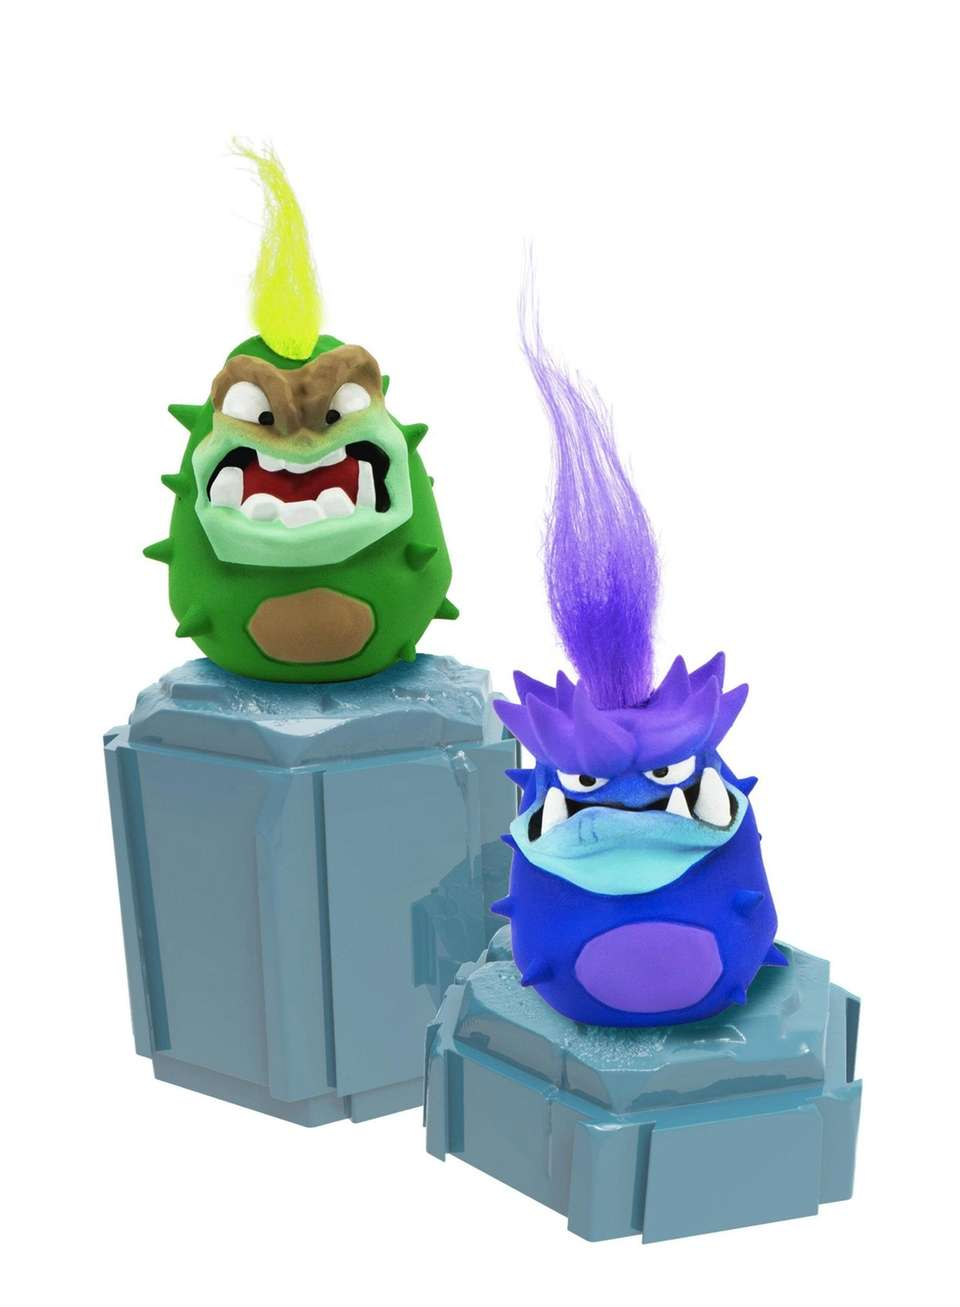 These mini versions of the common Grumblies characters